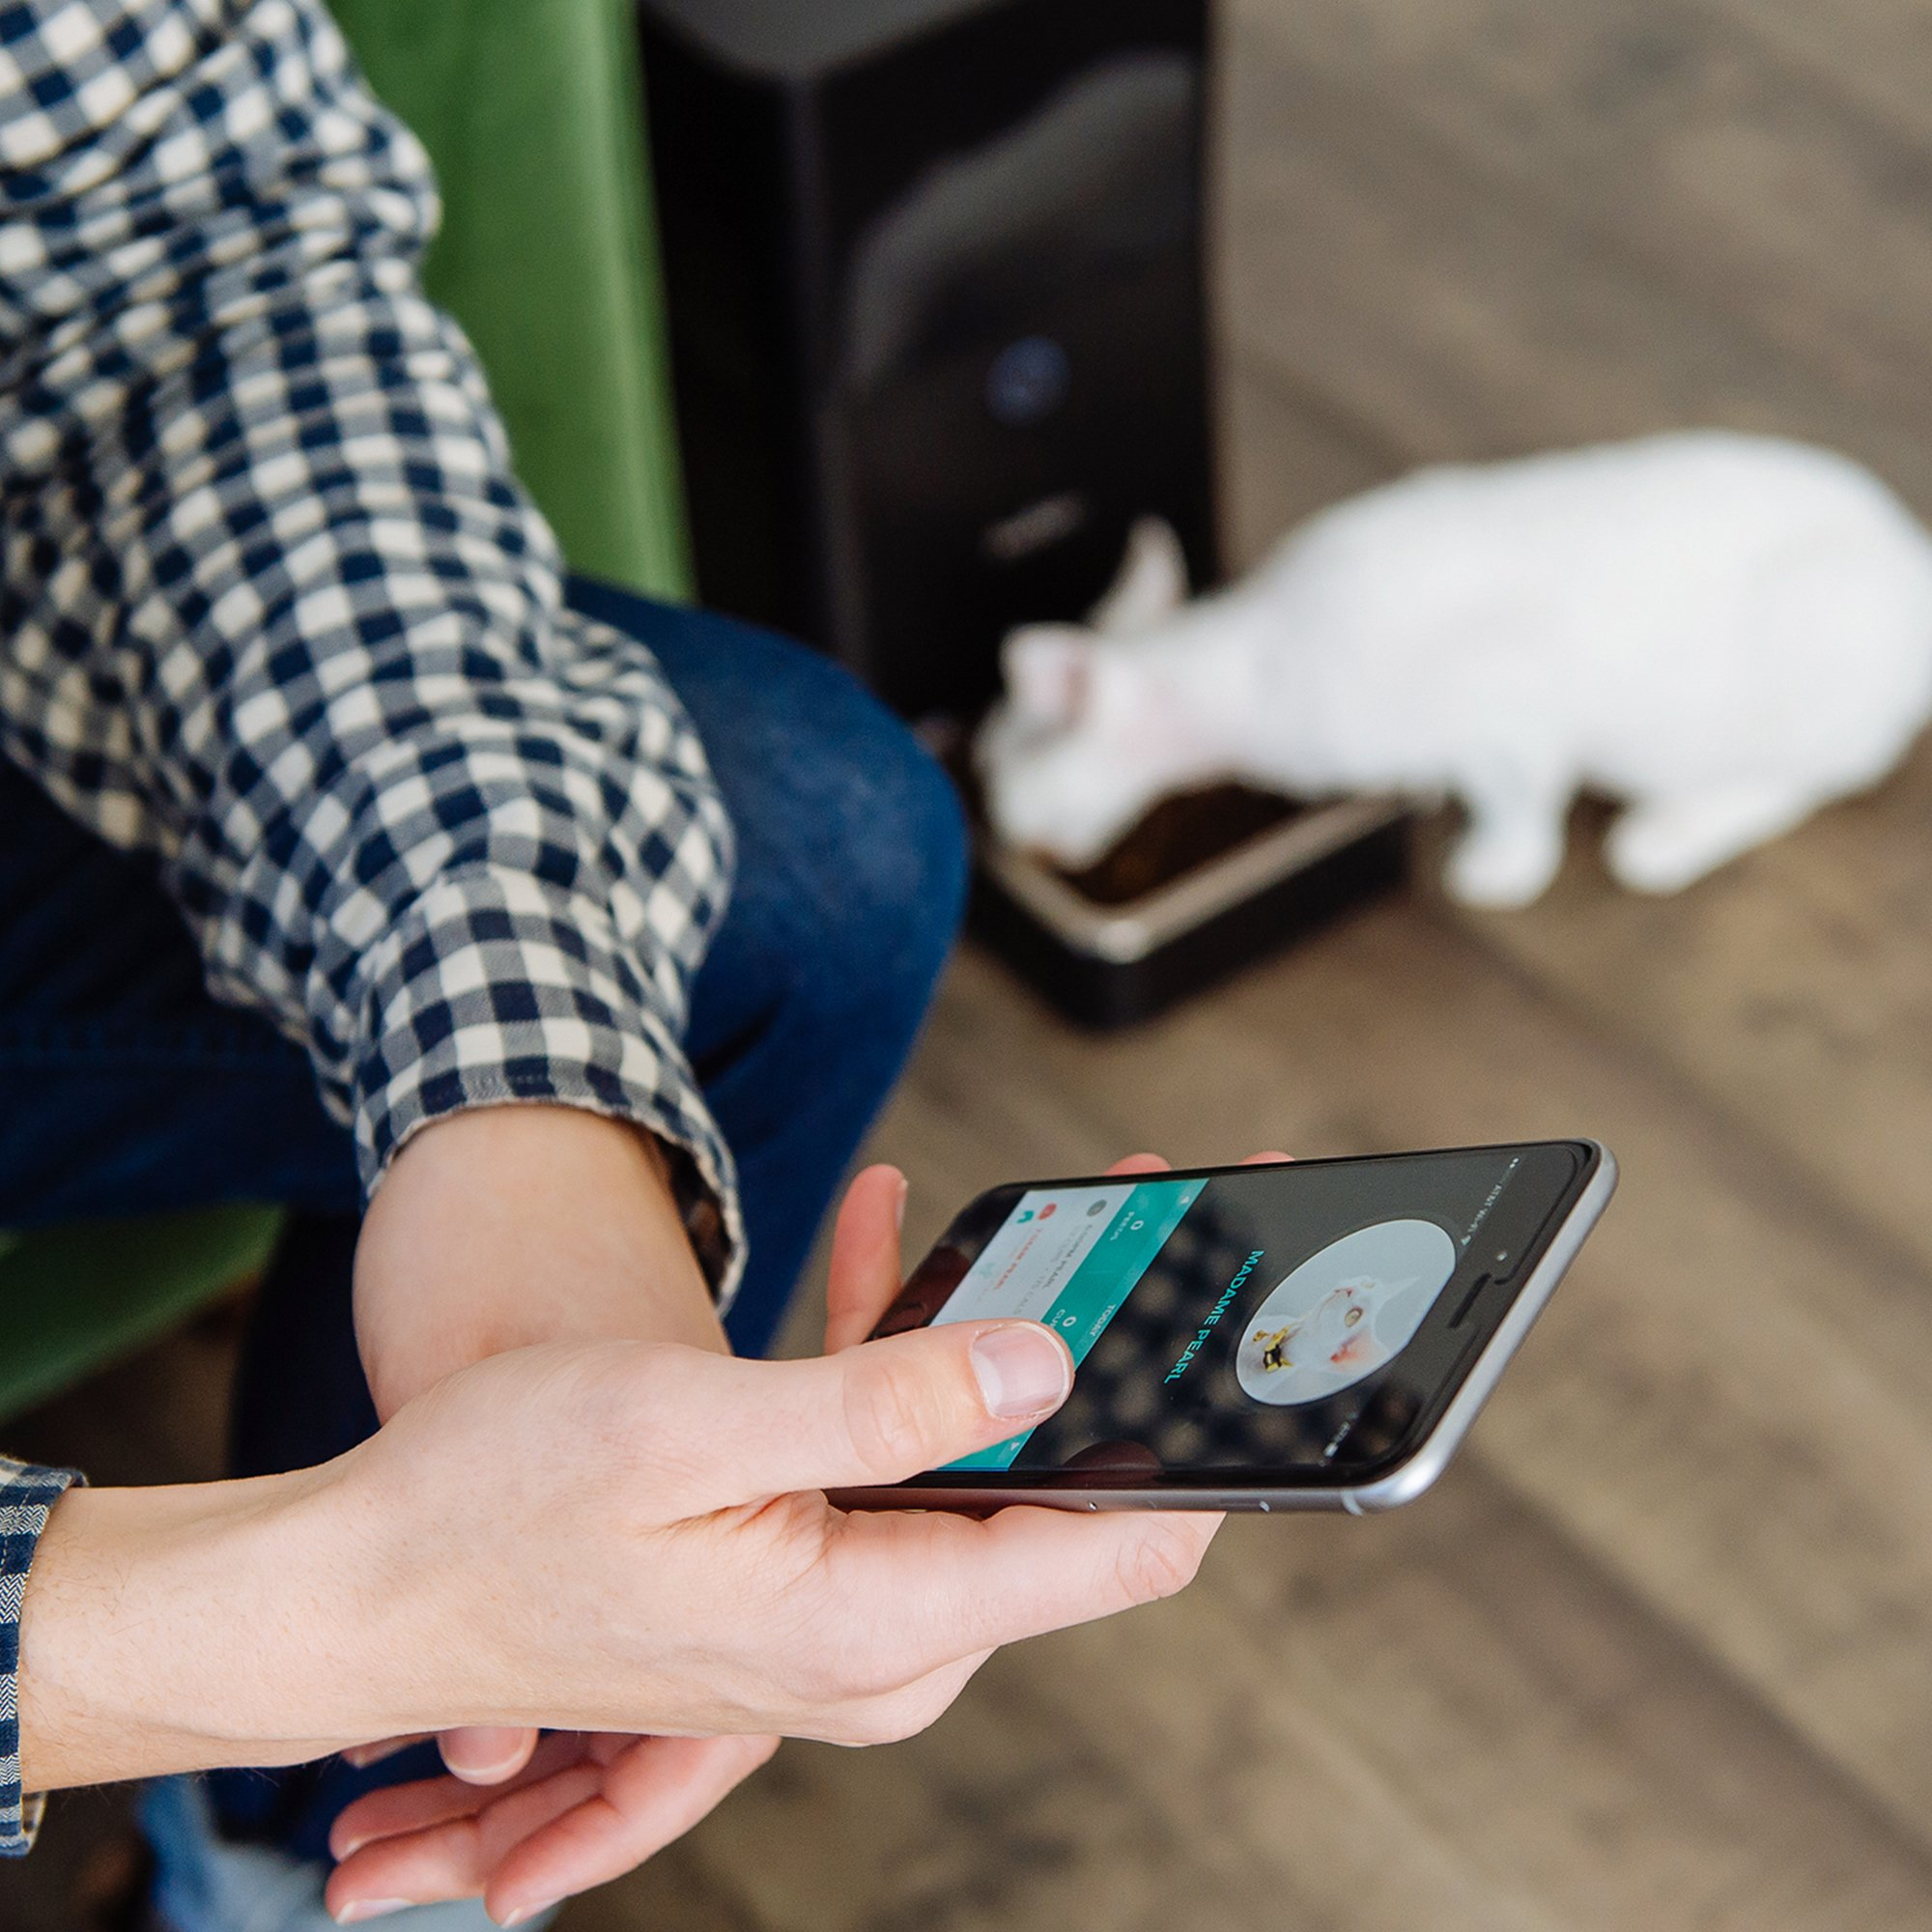 Petnet SmartFeeder, Automatic Pet Feeder for Cats and Dogs, Works with Amazon Alexa by Petnet (Image #7)